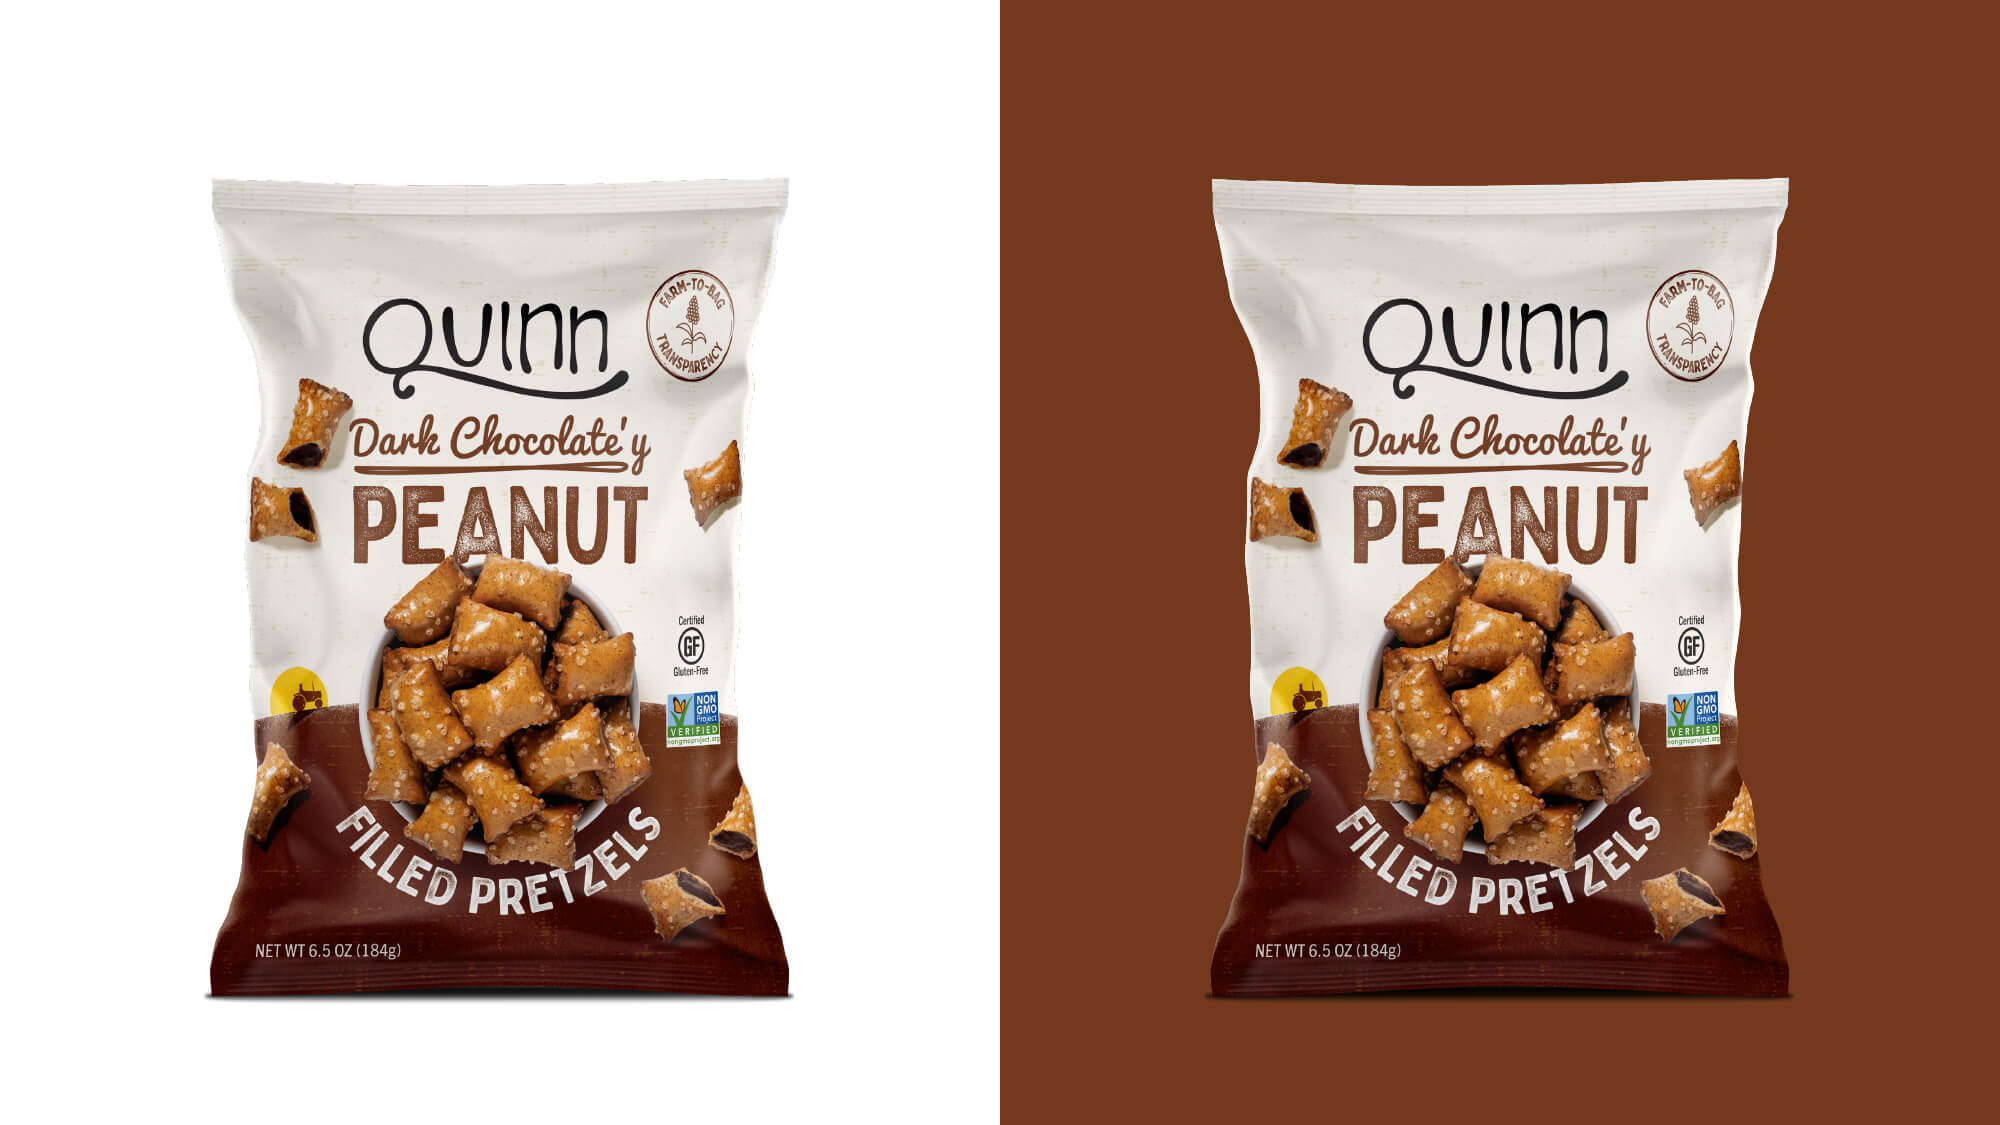 Quinn Pretzels Packaging - Dark Chocolate'y Filled Pretzels